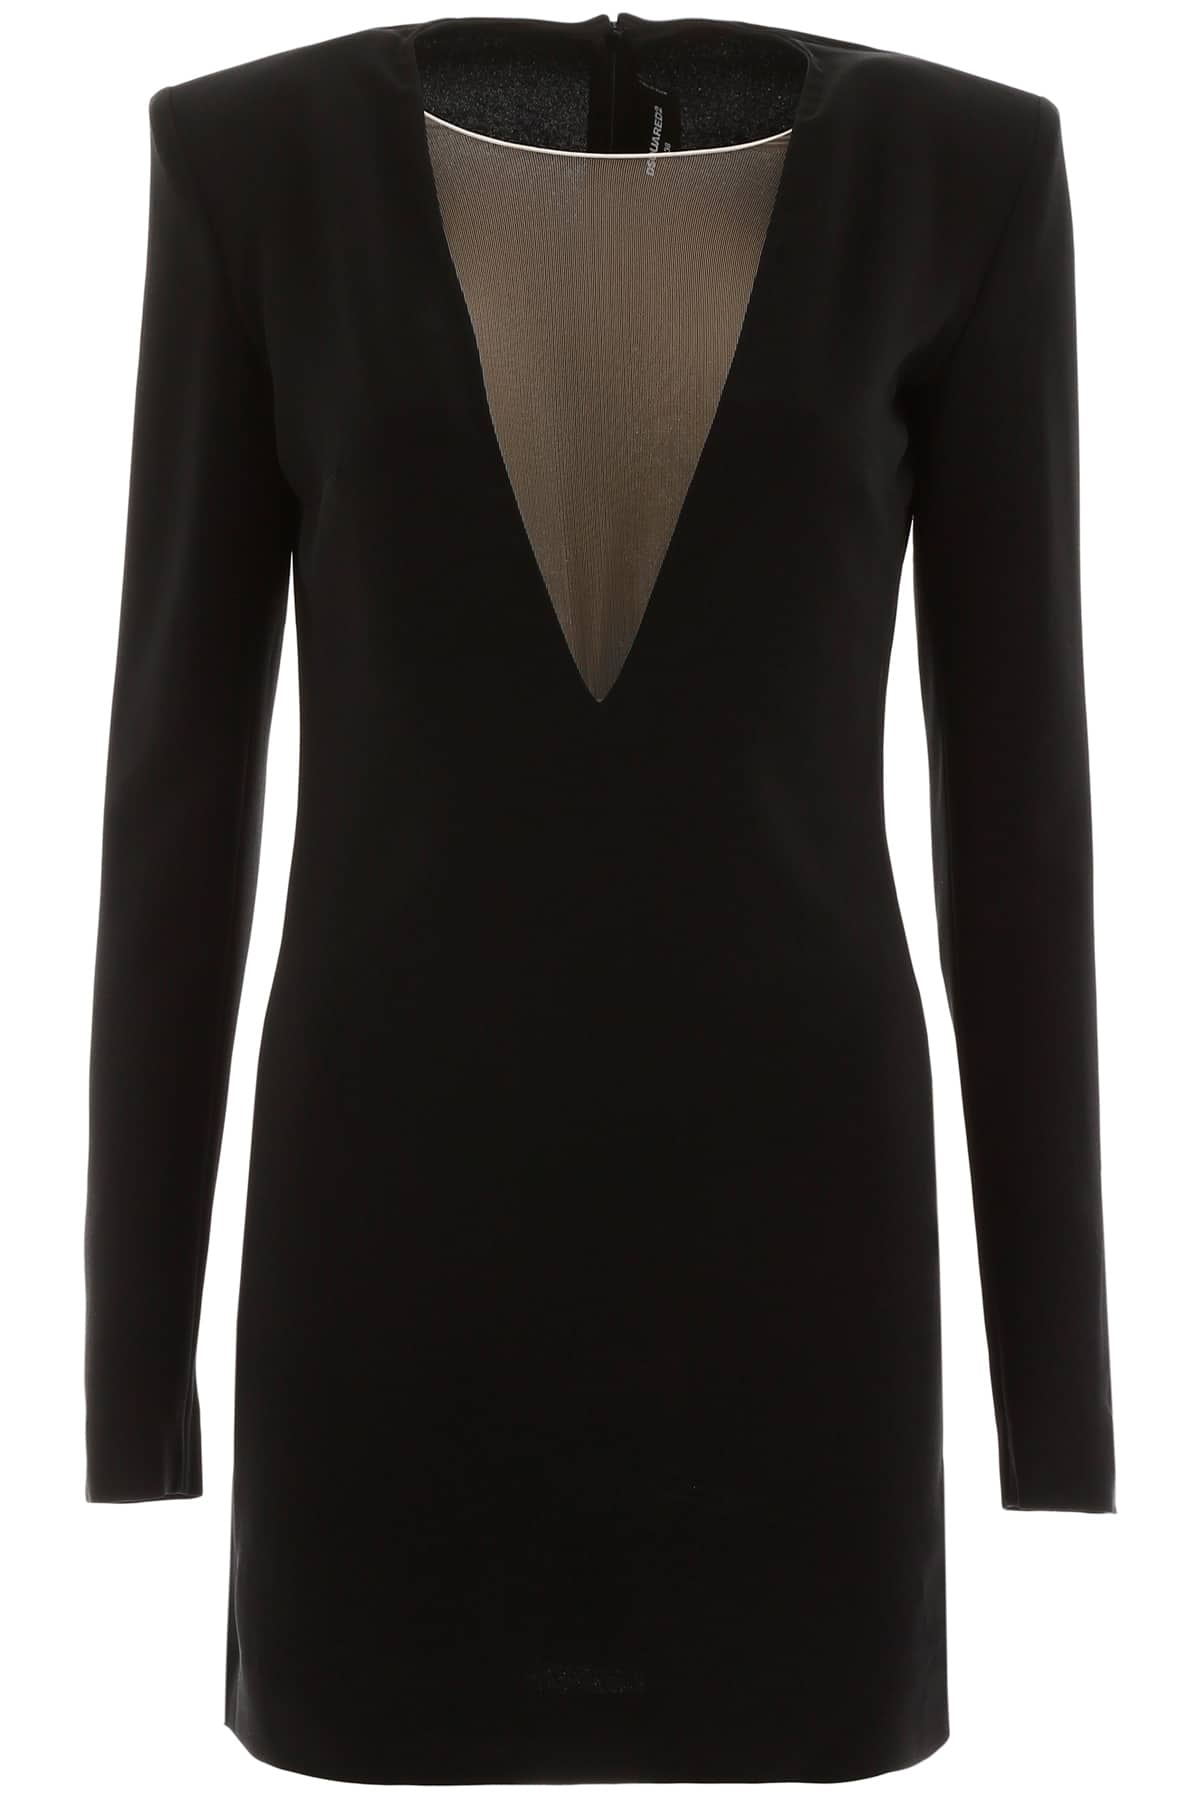 DSQUARED2 MINI DRESS WITH TULLE INSERT 42 Black